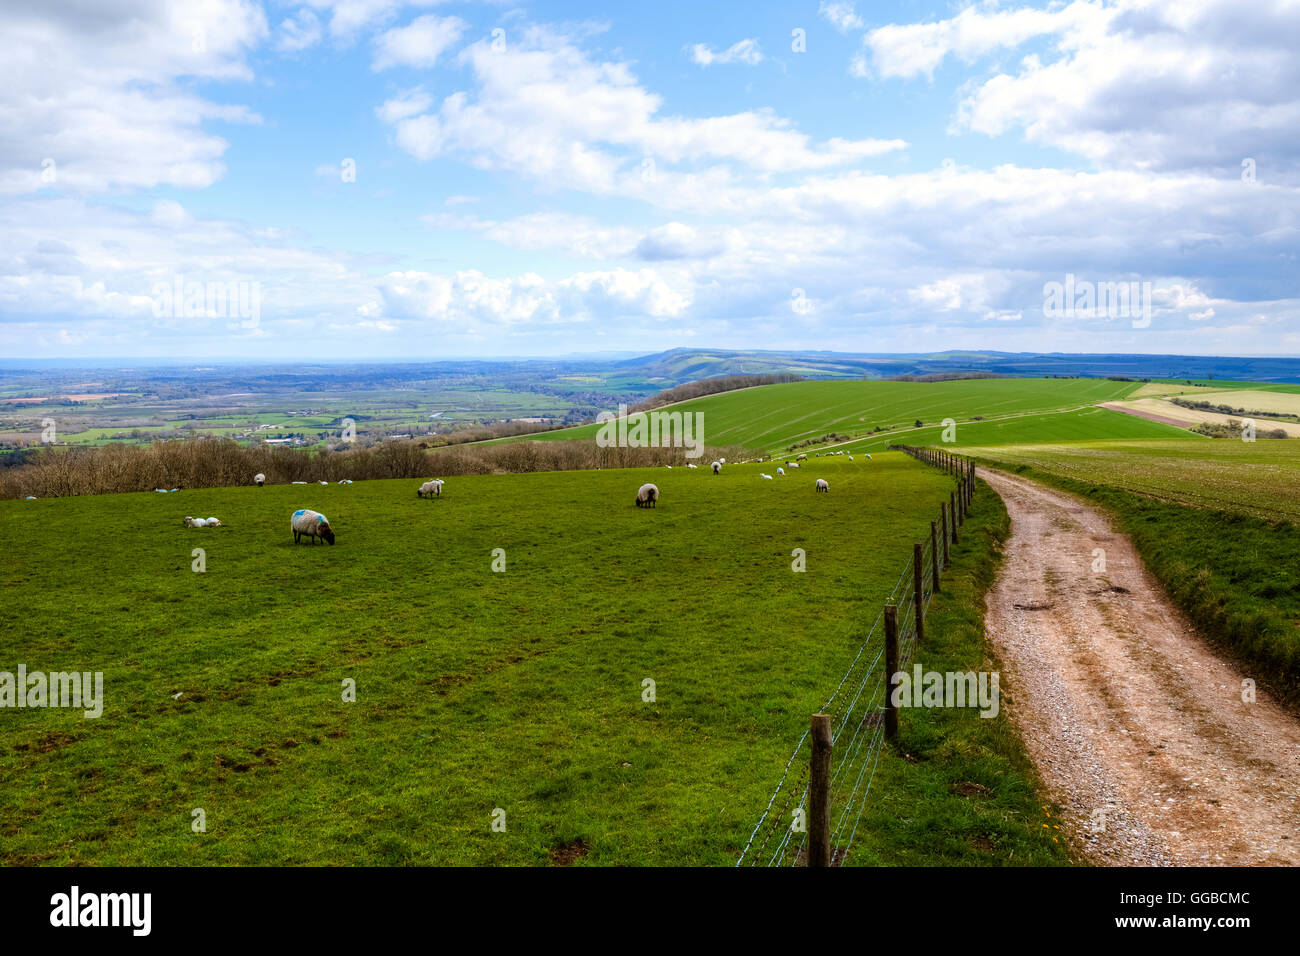 South Downs, Petworth, Chichester, West Sussex, England, UK - Stock Image